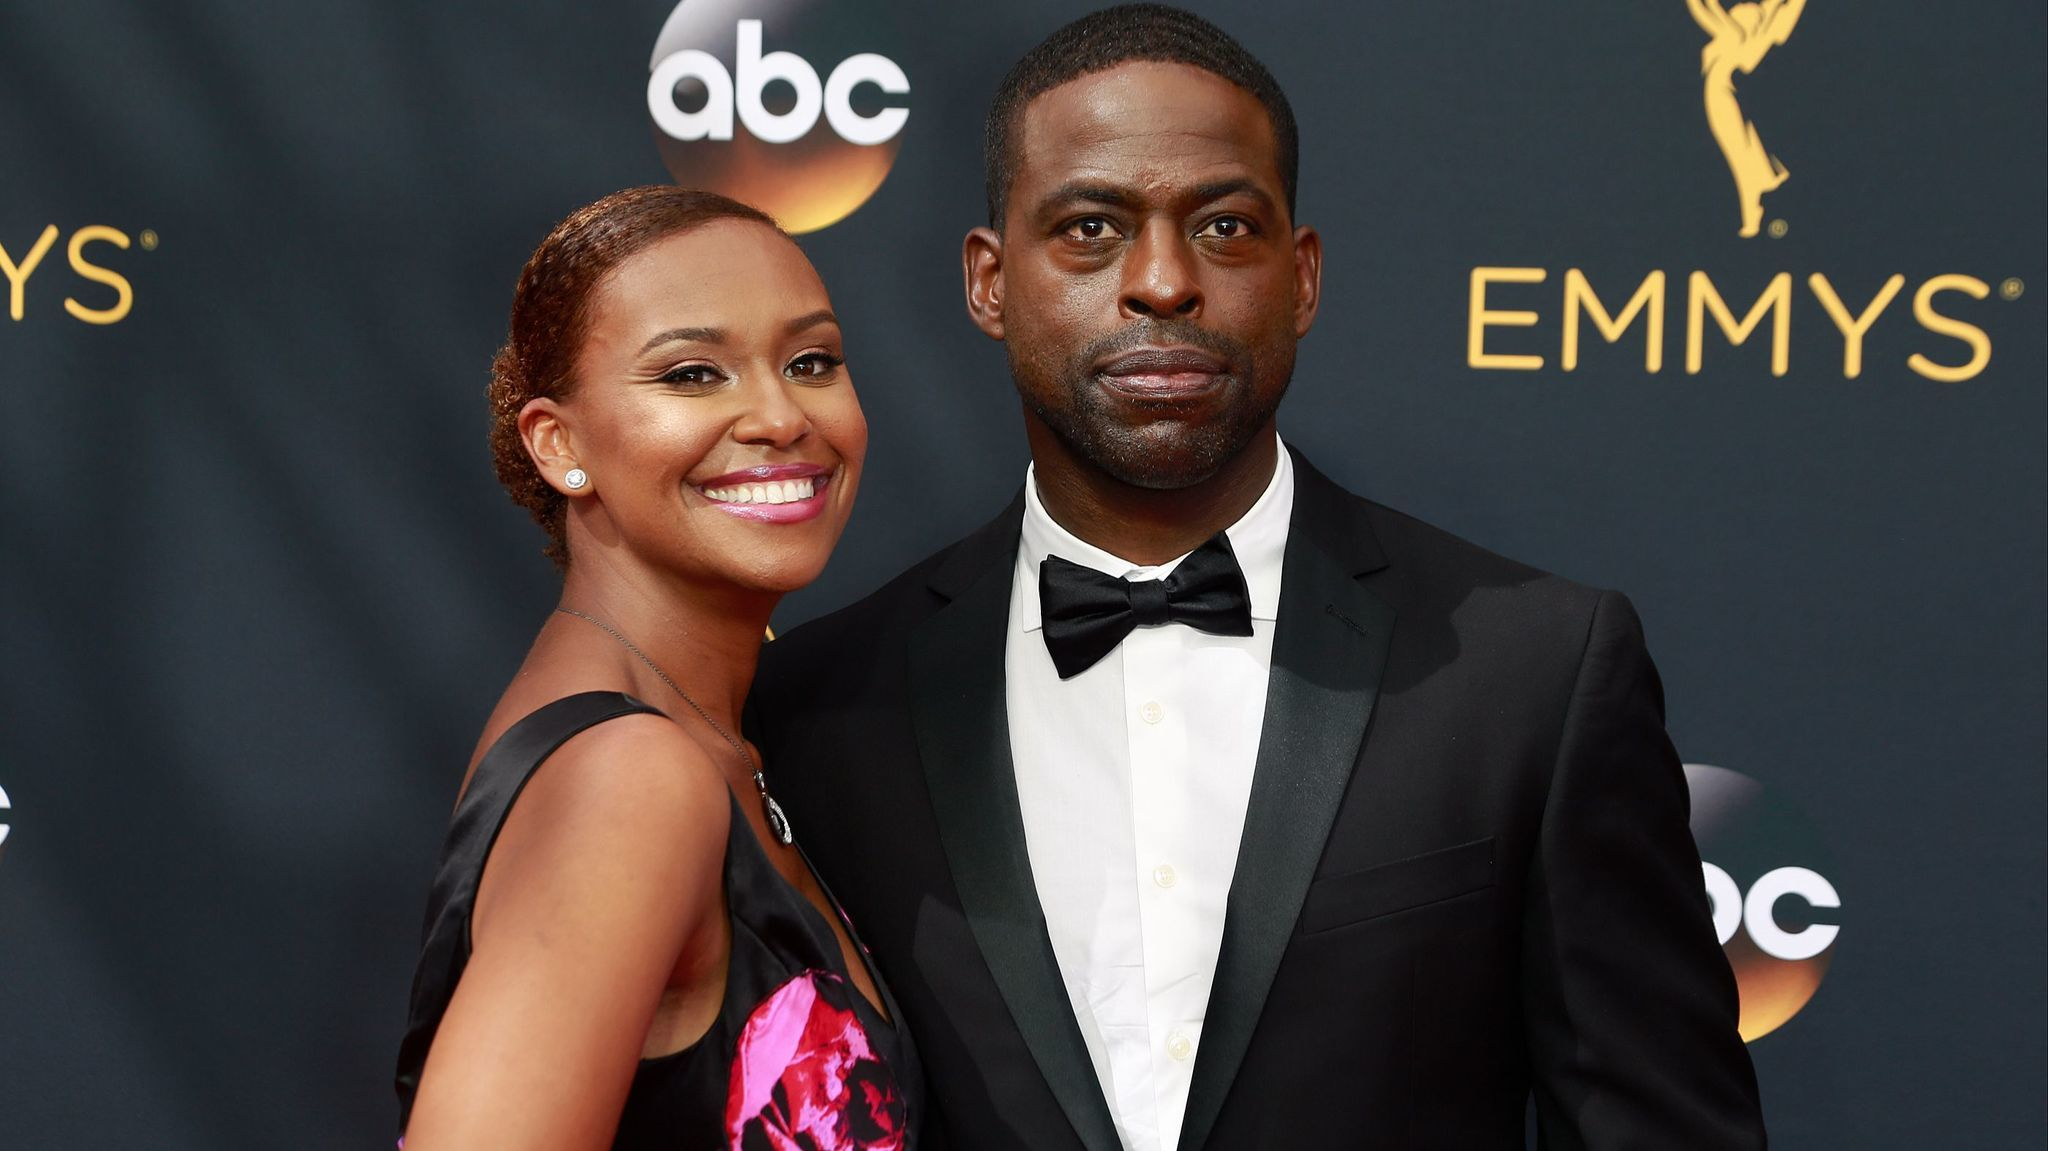 Actor Sterling K. Brown, and his wife, actress Ryan Michelle Bathe, light up the red carpet at the 68th Primetime Emmy Awards.